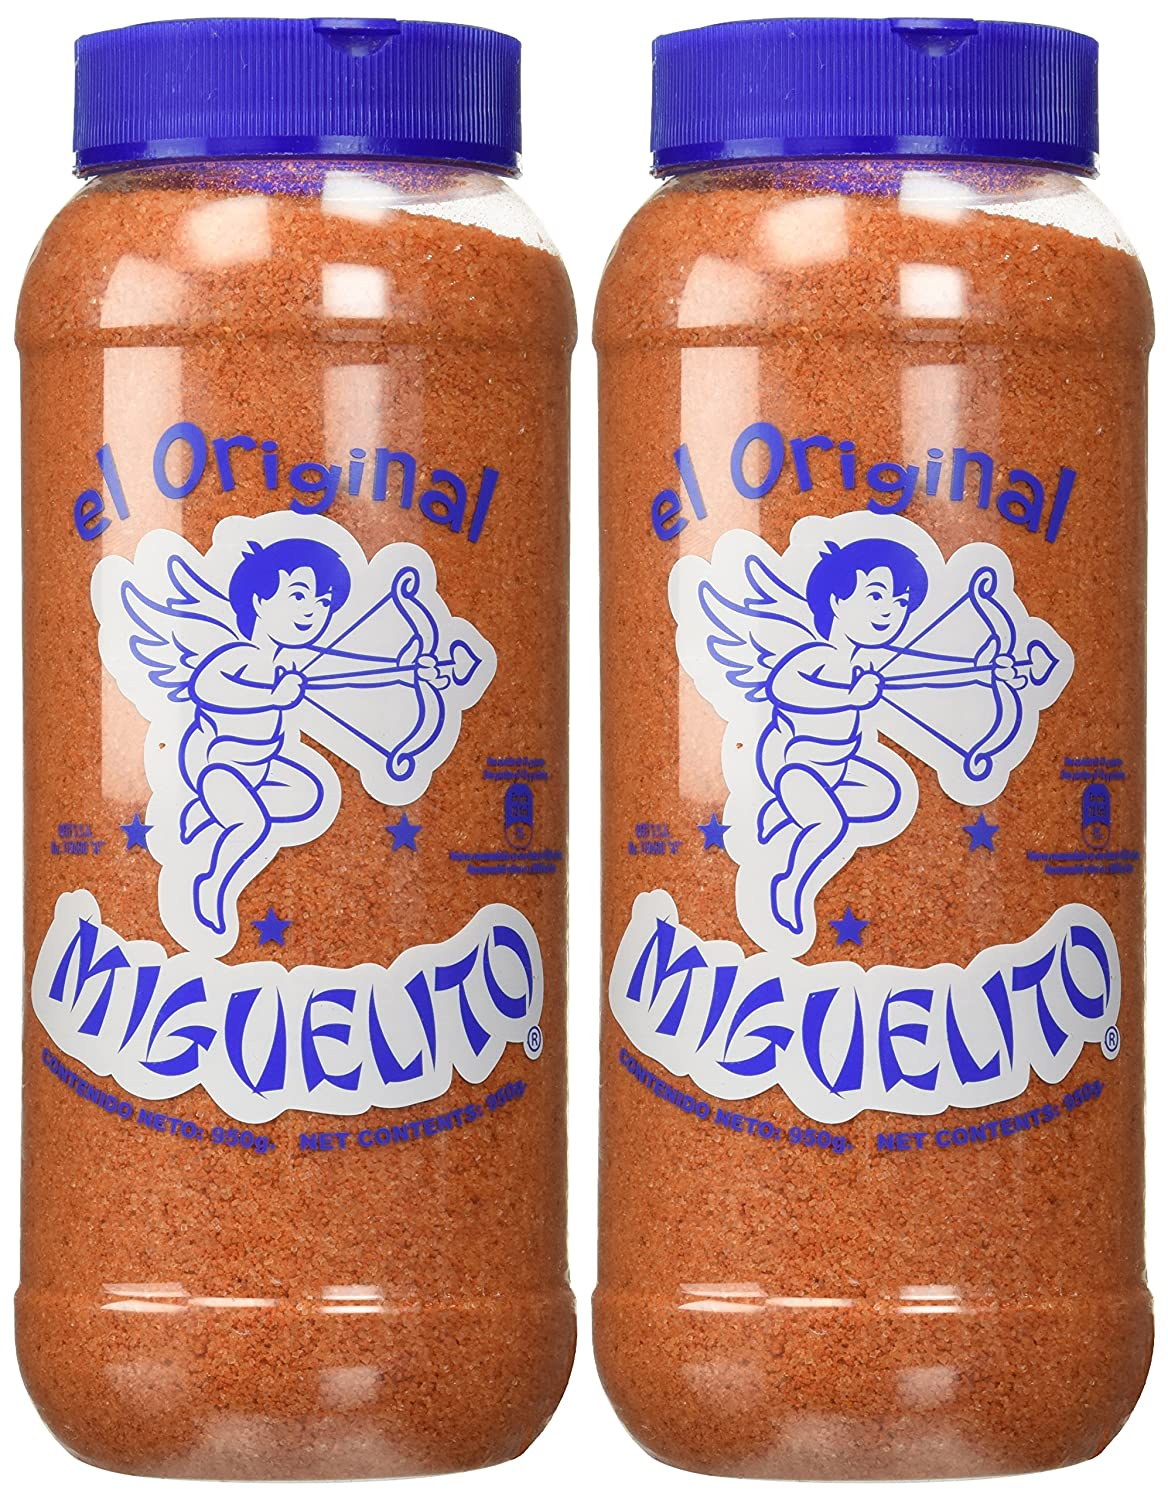 Amazon.com : Miguelito El Original Chilito En Polvo Mexican Candy Chili Powder 2 Bottles 950g Each : Sour Flavored Candies : Grocery & Gourmet Food